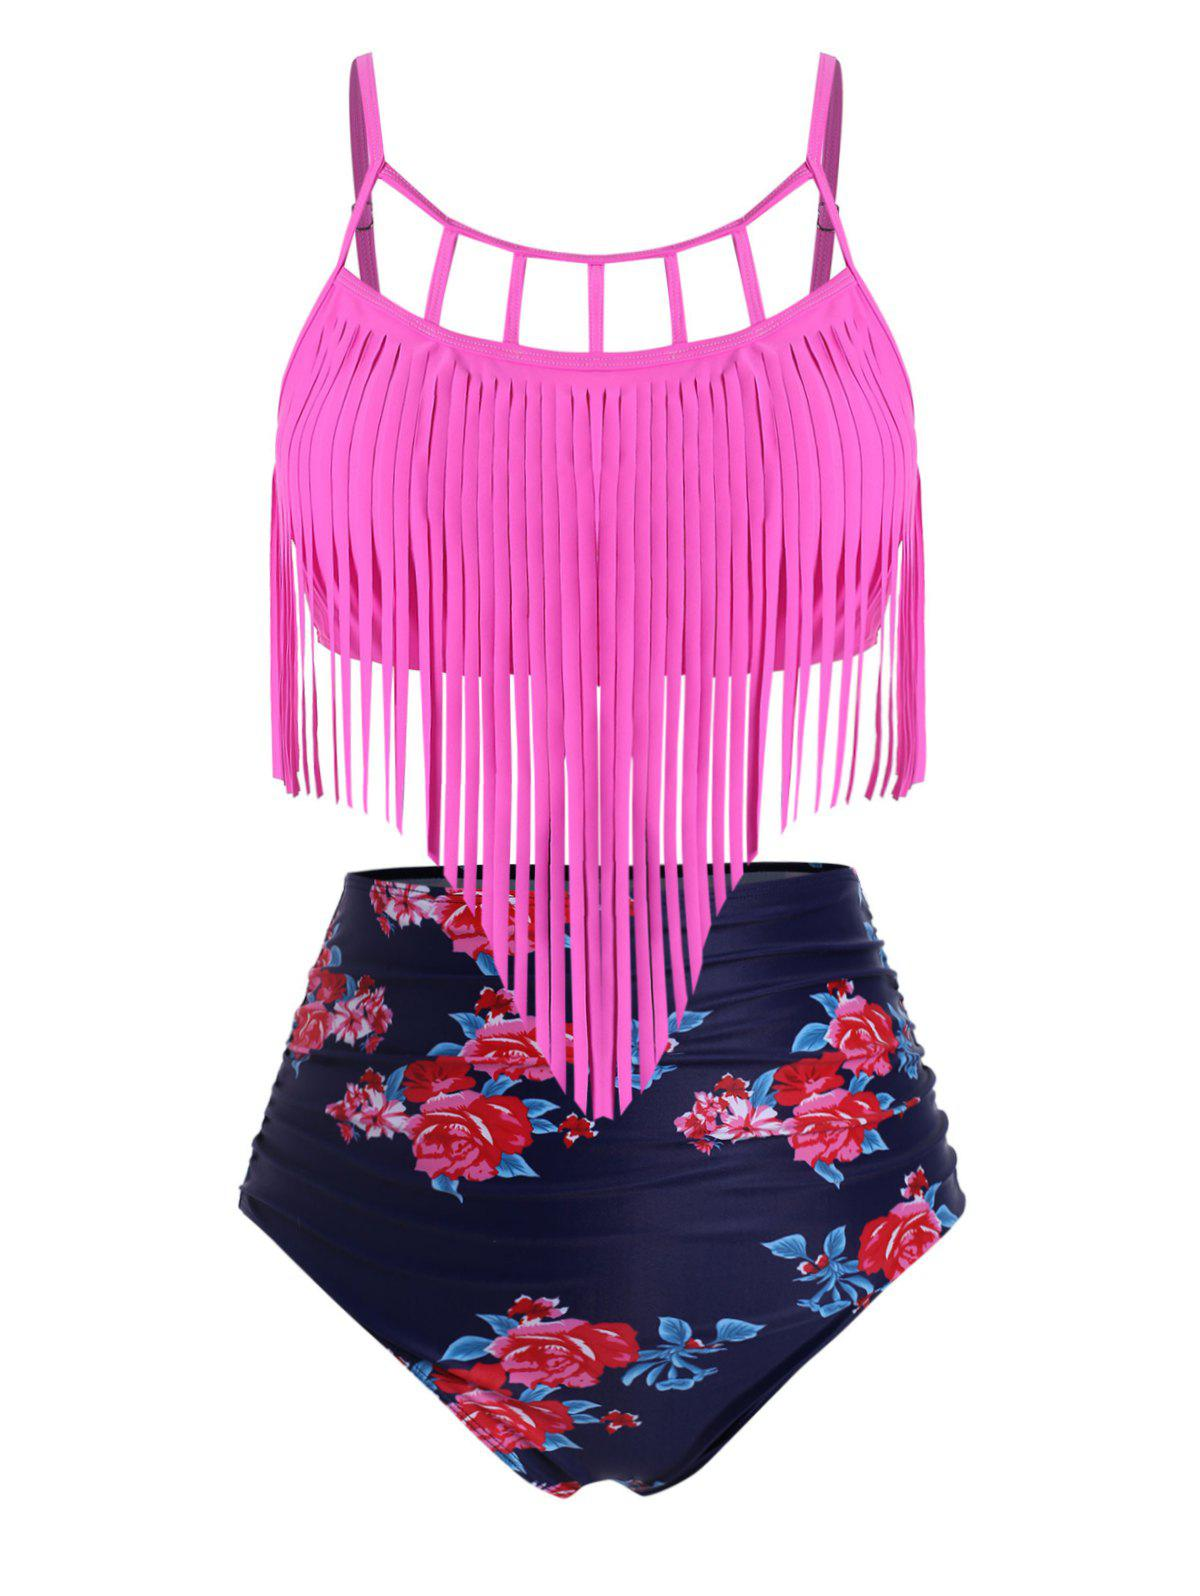 Fringed Floral Ruched High Waisted Plus Size Tankini Swimsuit - ROSE RED 5X